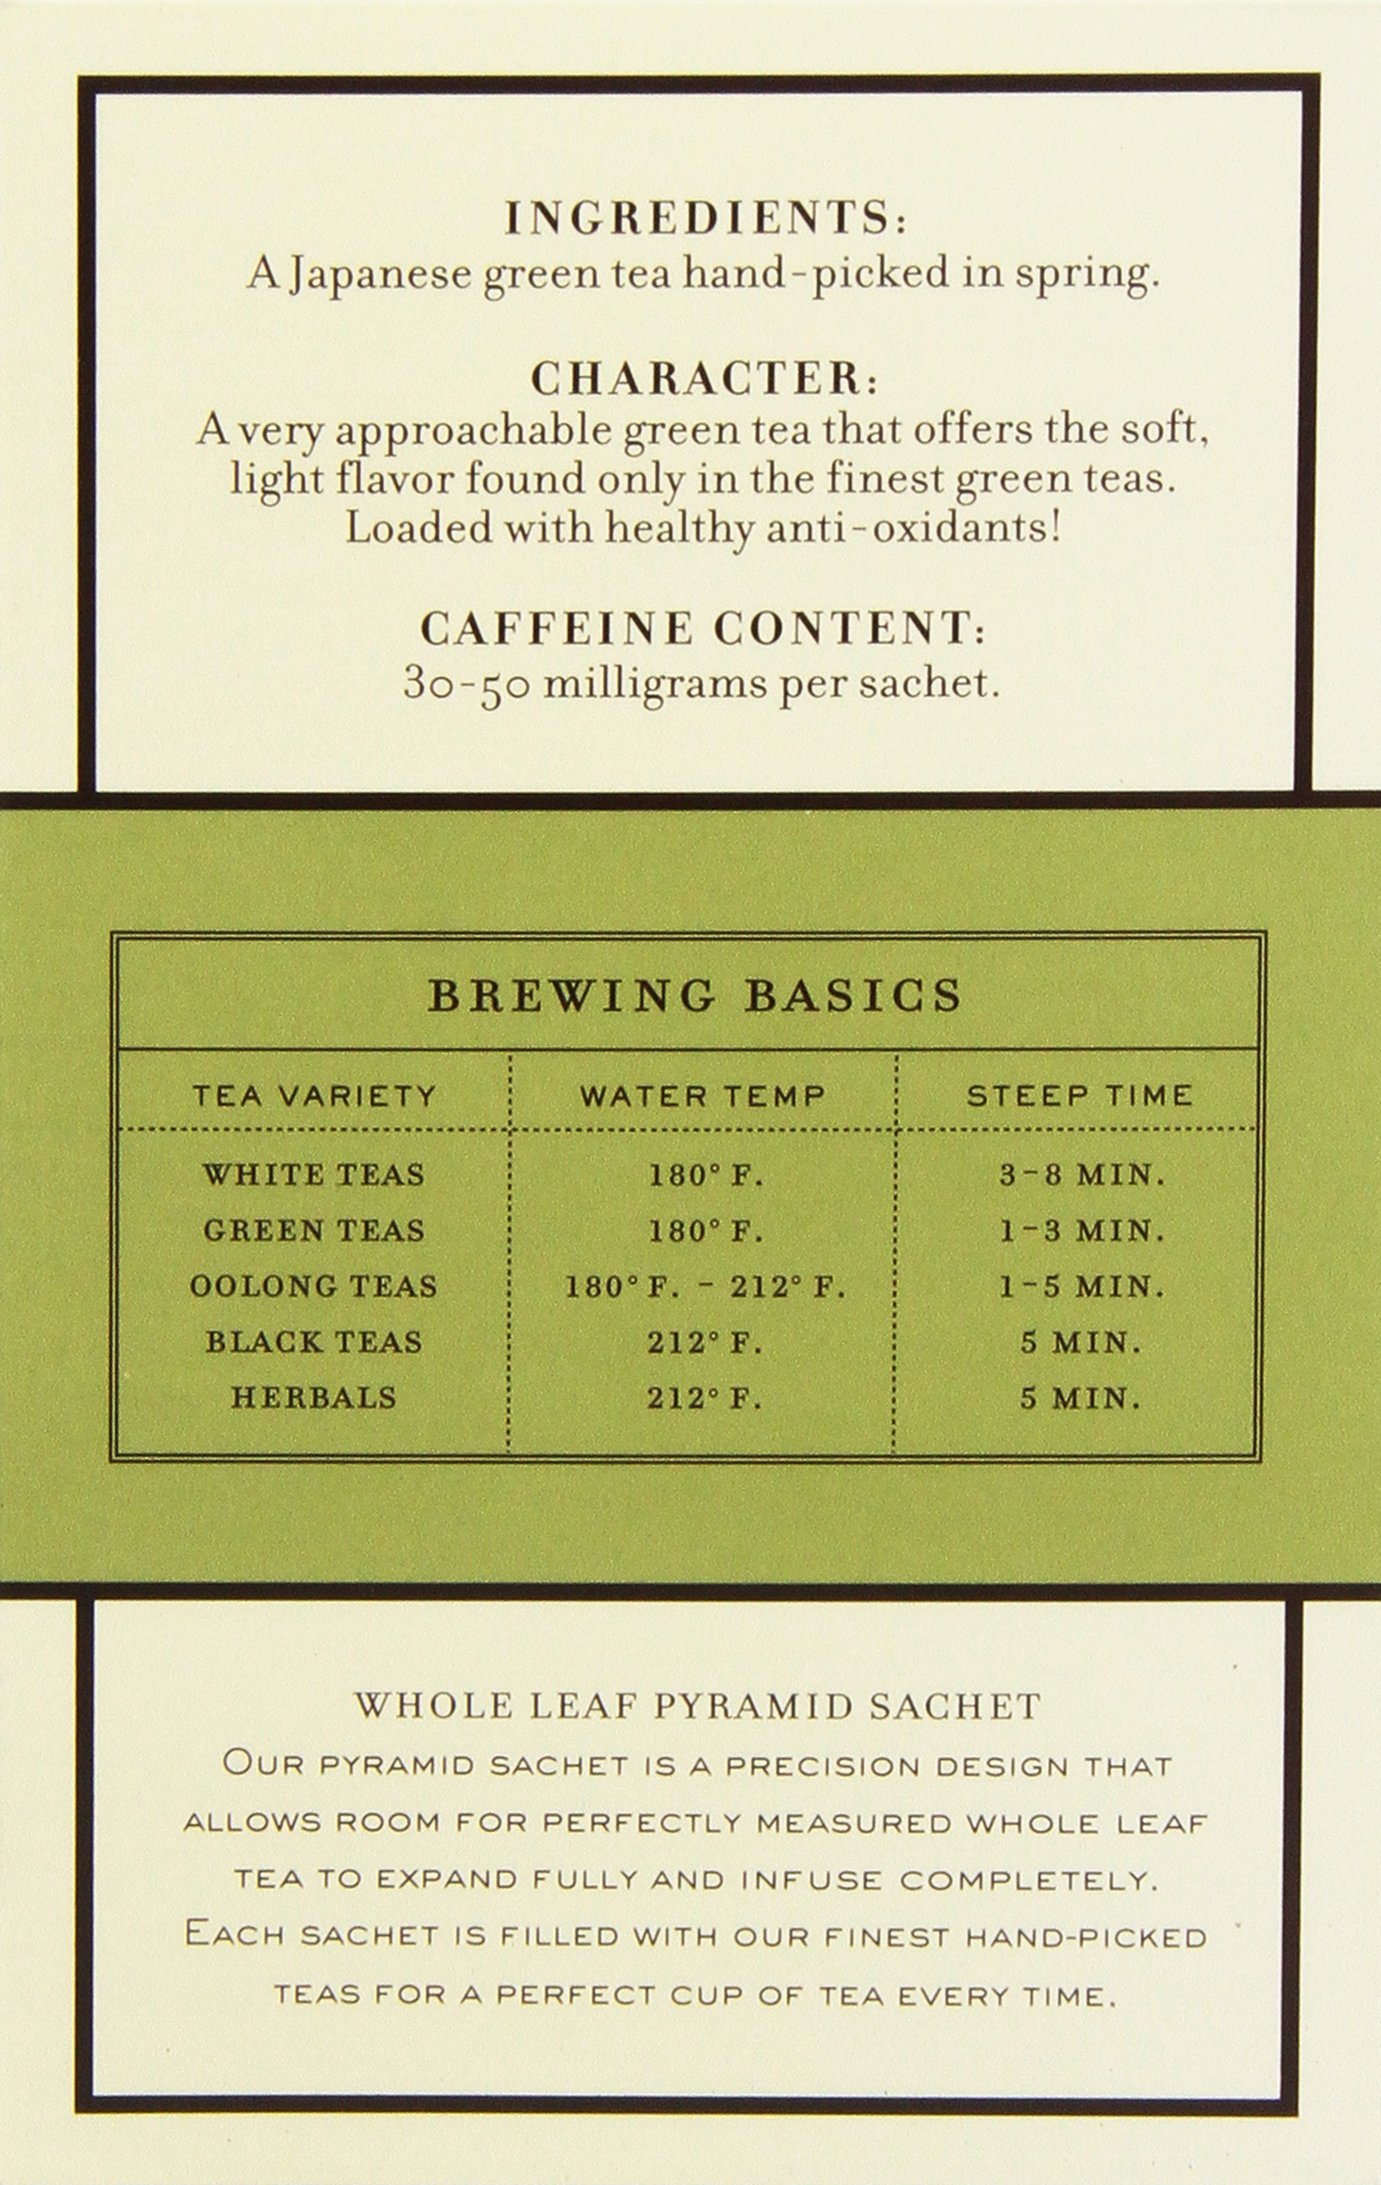 Harney & Sons Green Tea, Japanese Sencha, 20 Sachets, Pack of 6 by Harney & Sons (Image #3)